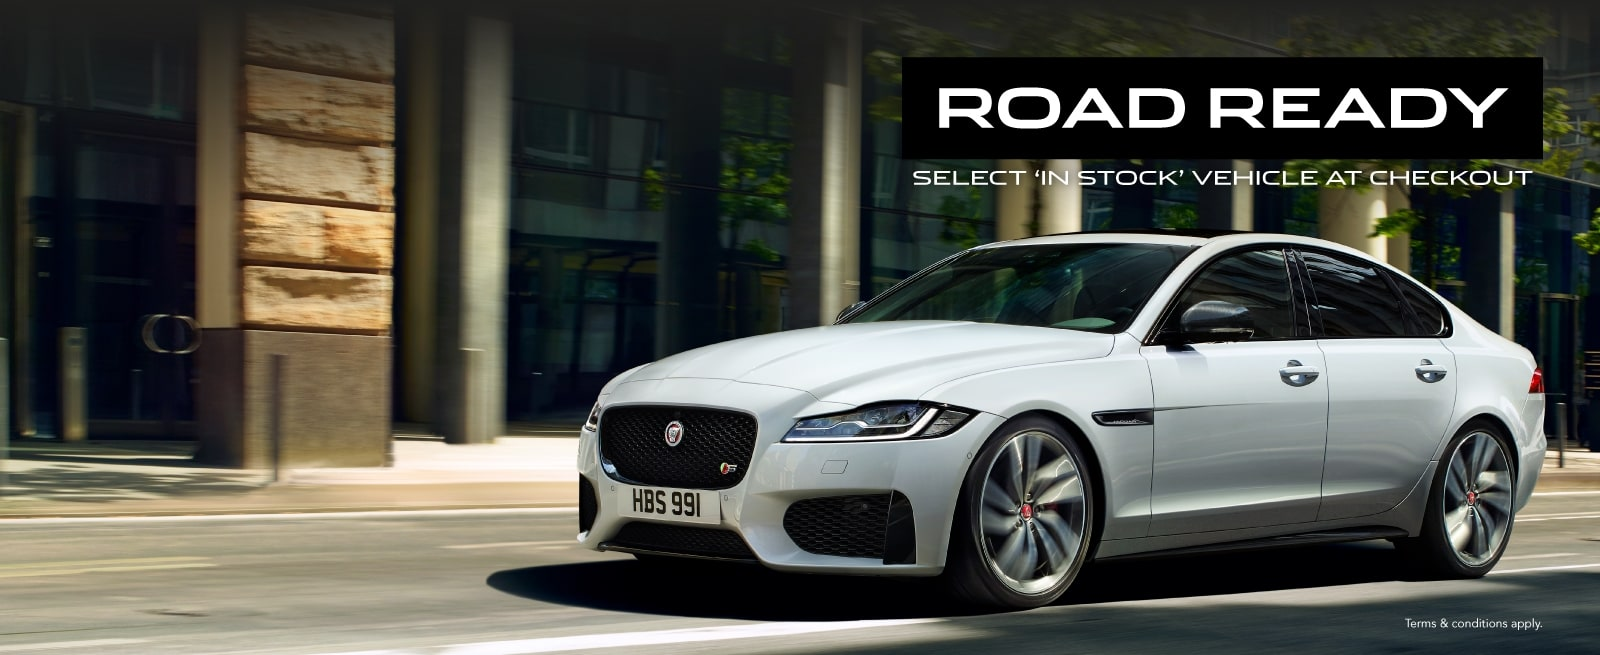 Jaguar Road Ready - Available In Two Weeks